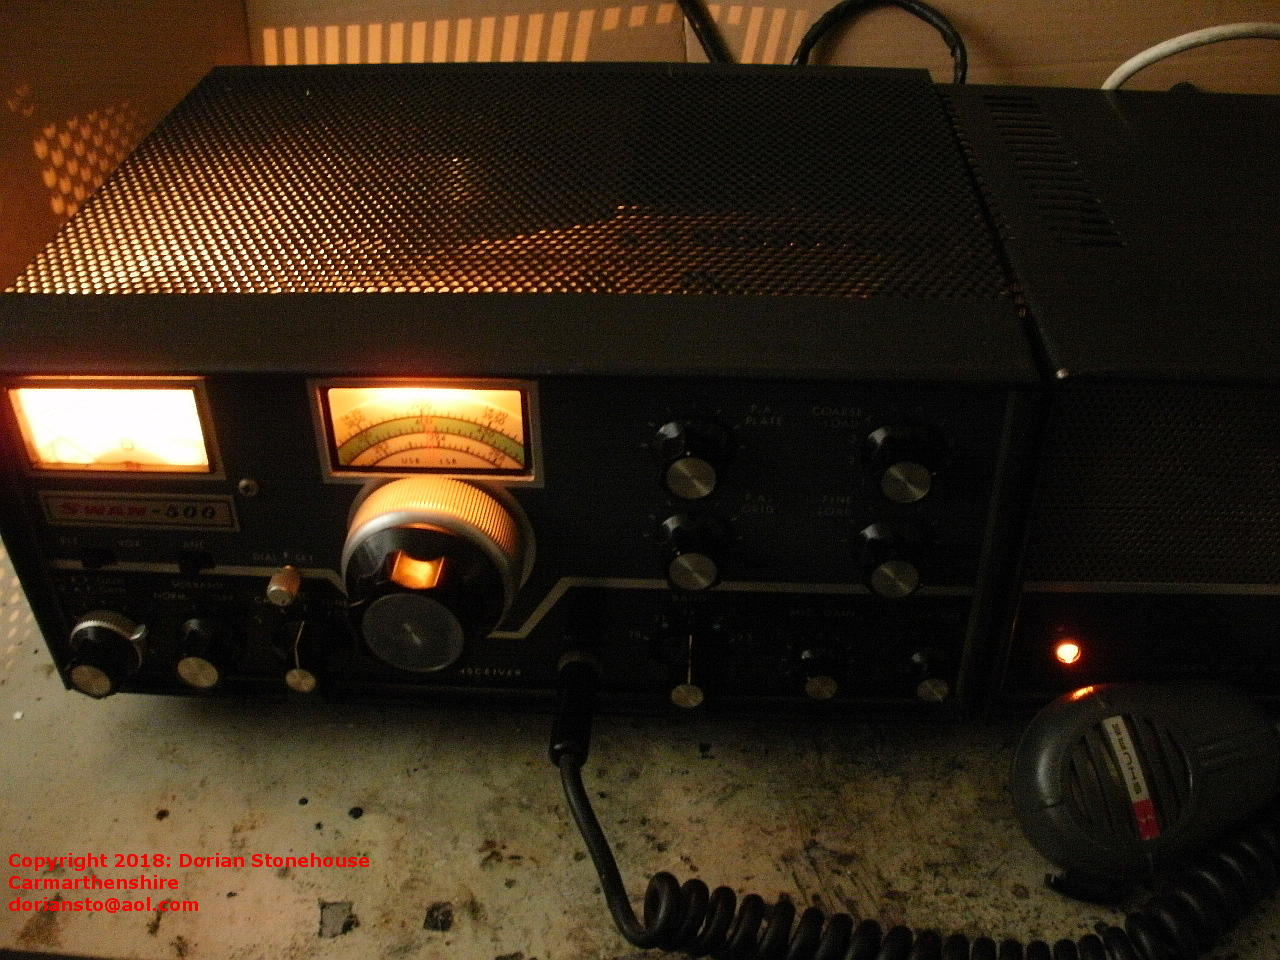 Mic Wiring Swan 500 Electrical Diagrams Astatic D104 Treasure In The Loft Vintage Radio Transceiver Preserved Iphone